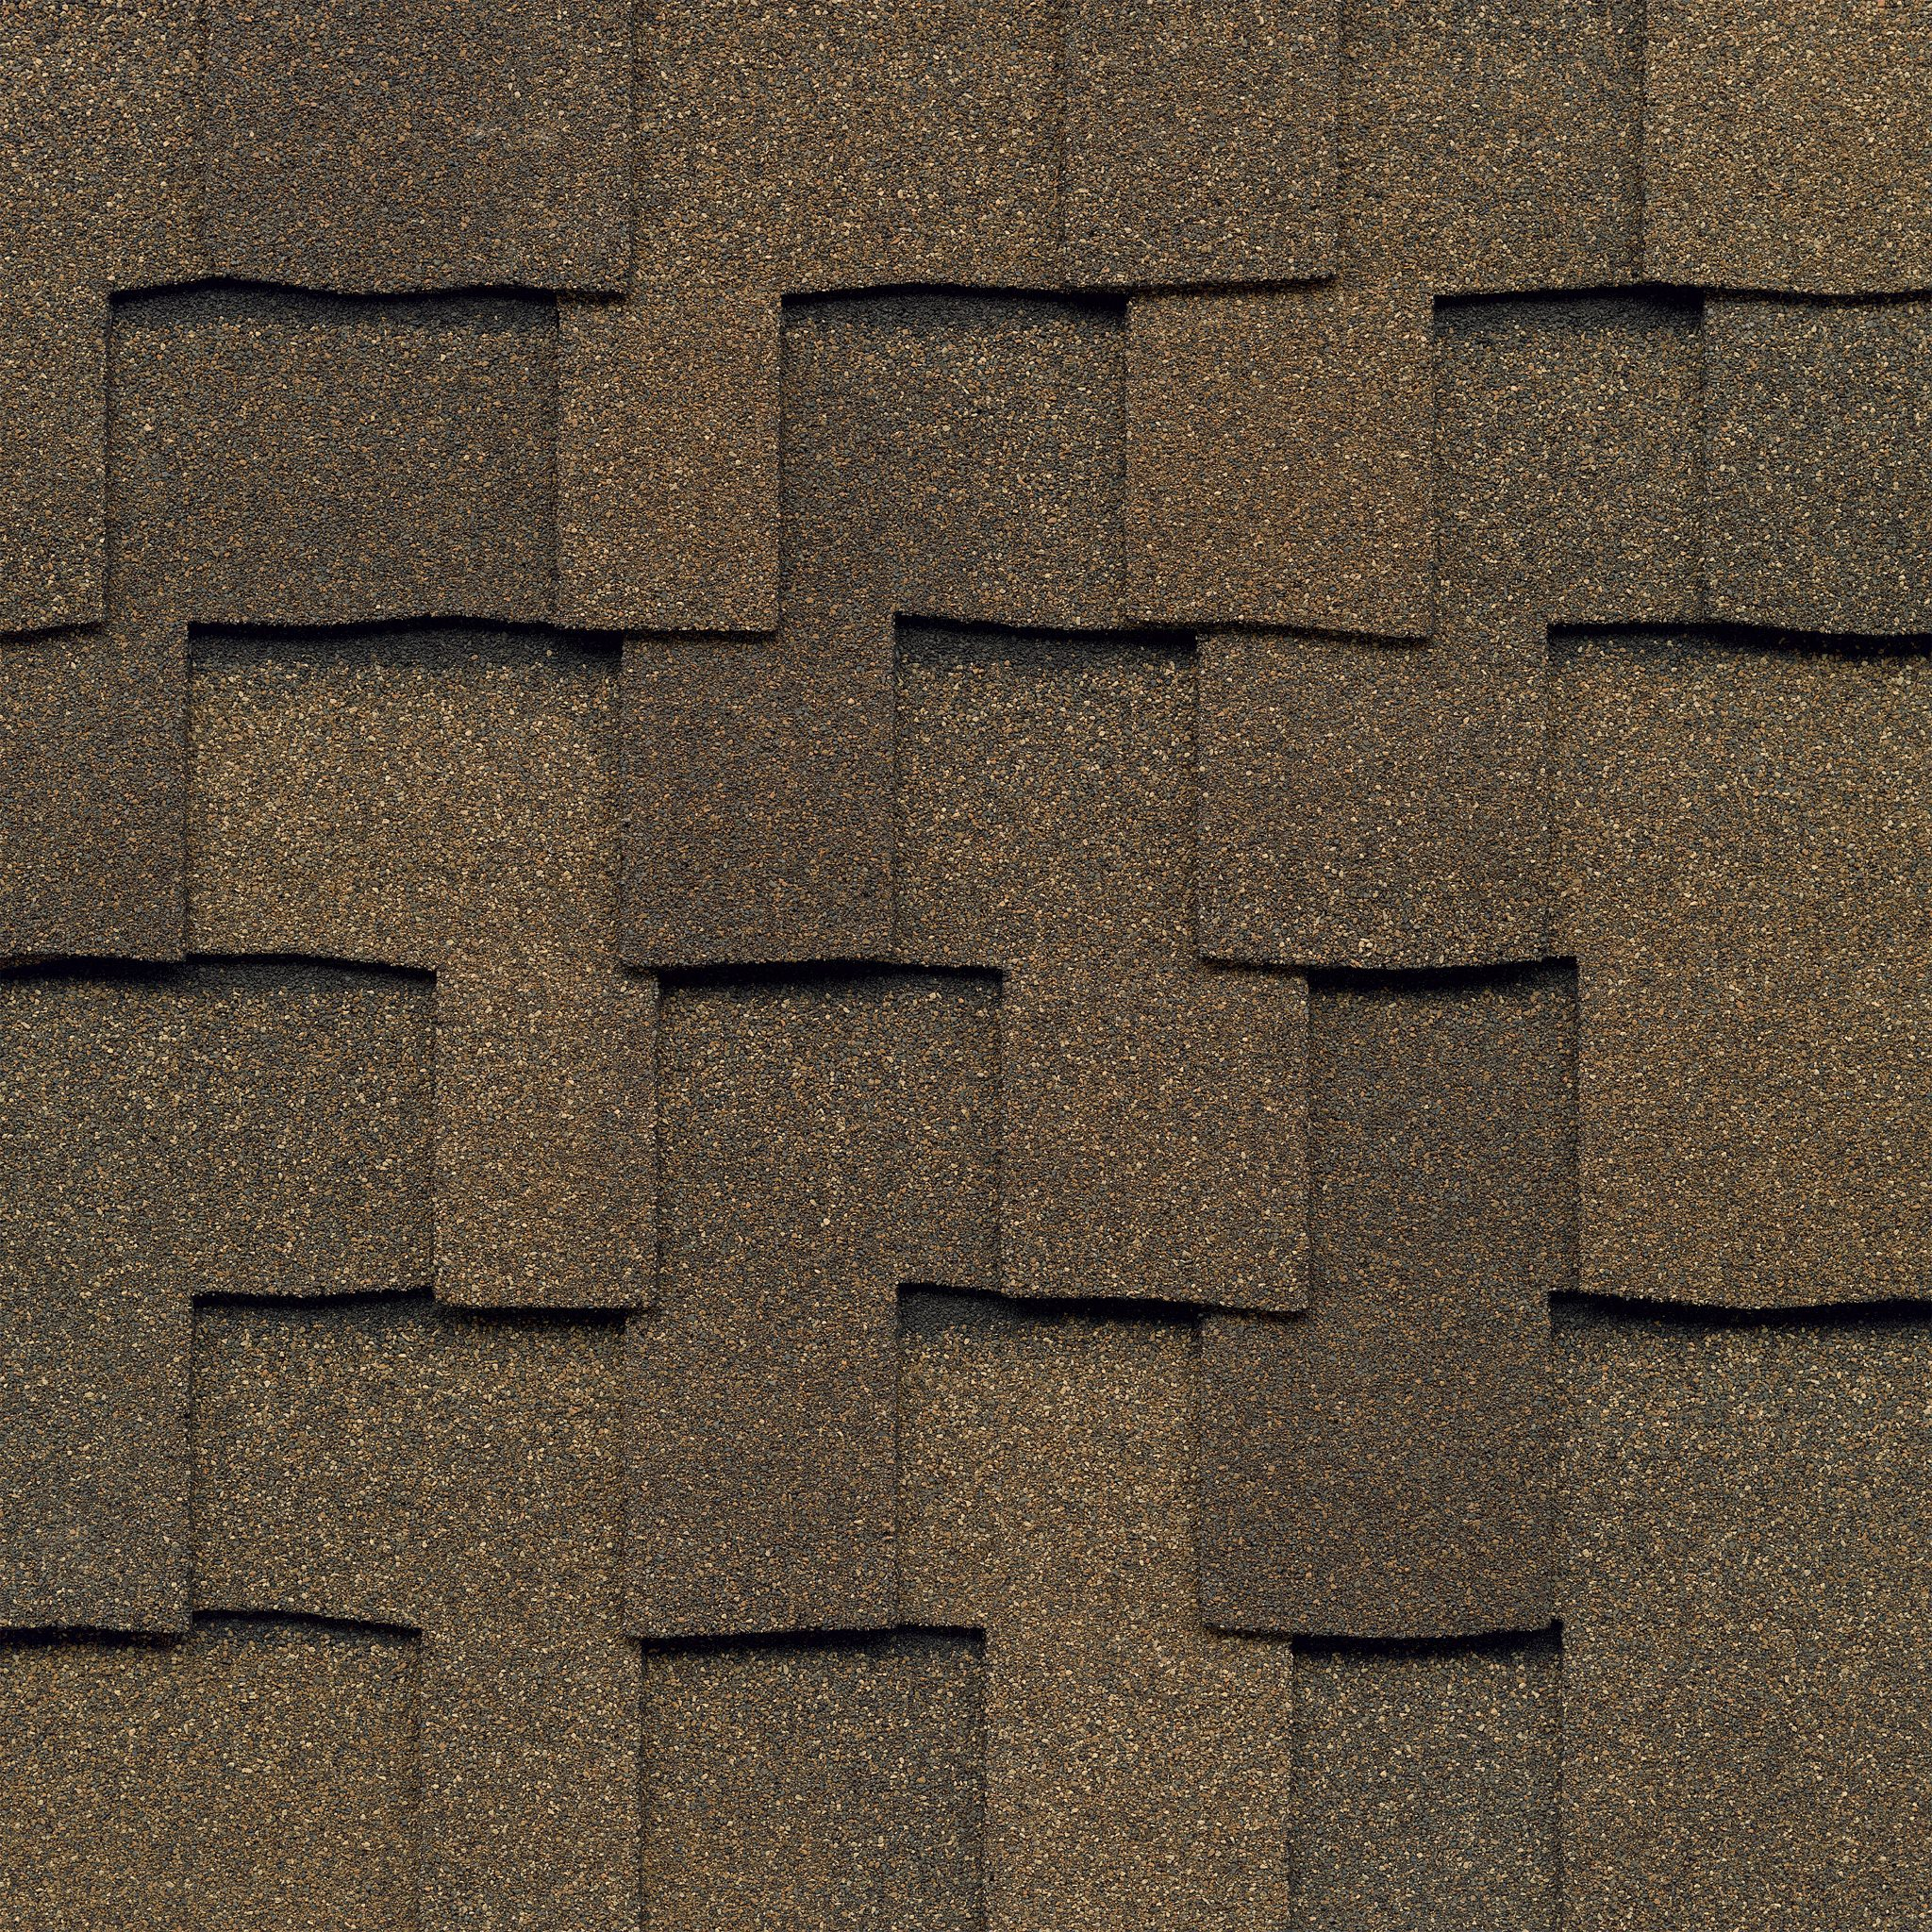 Close-up photo of GAF's Grand Sequoia Cedar shingle swatch